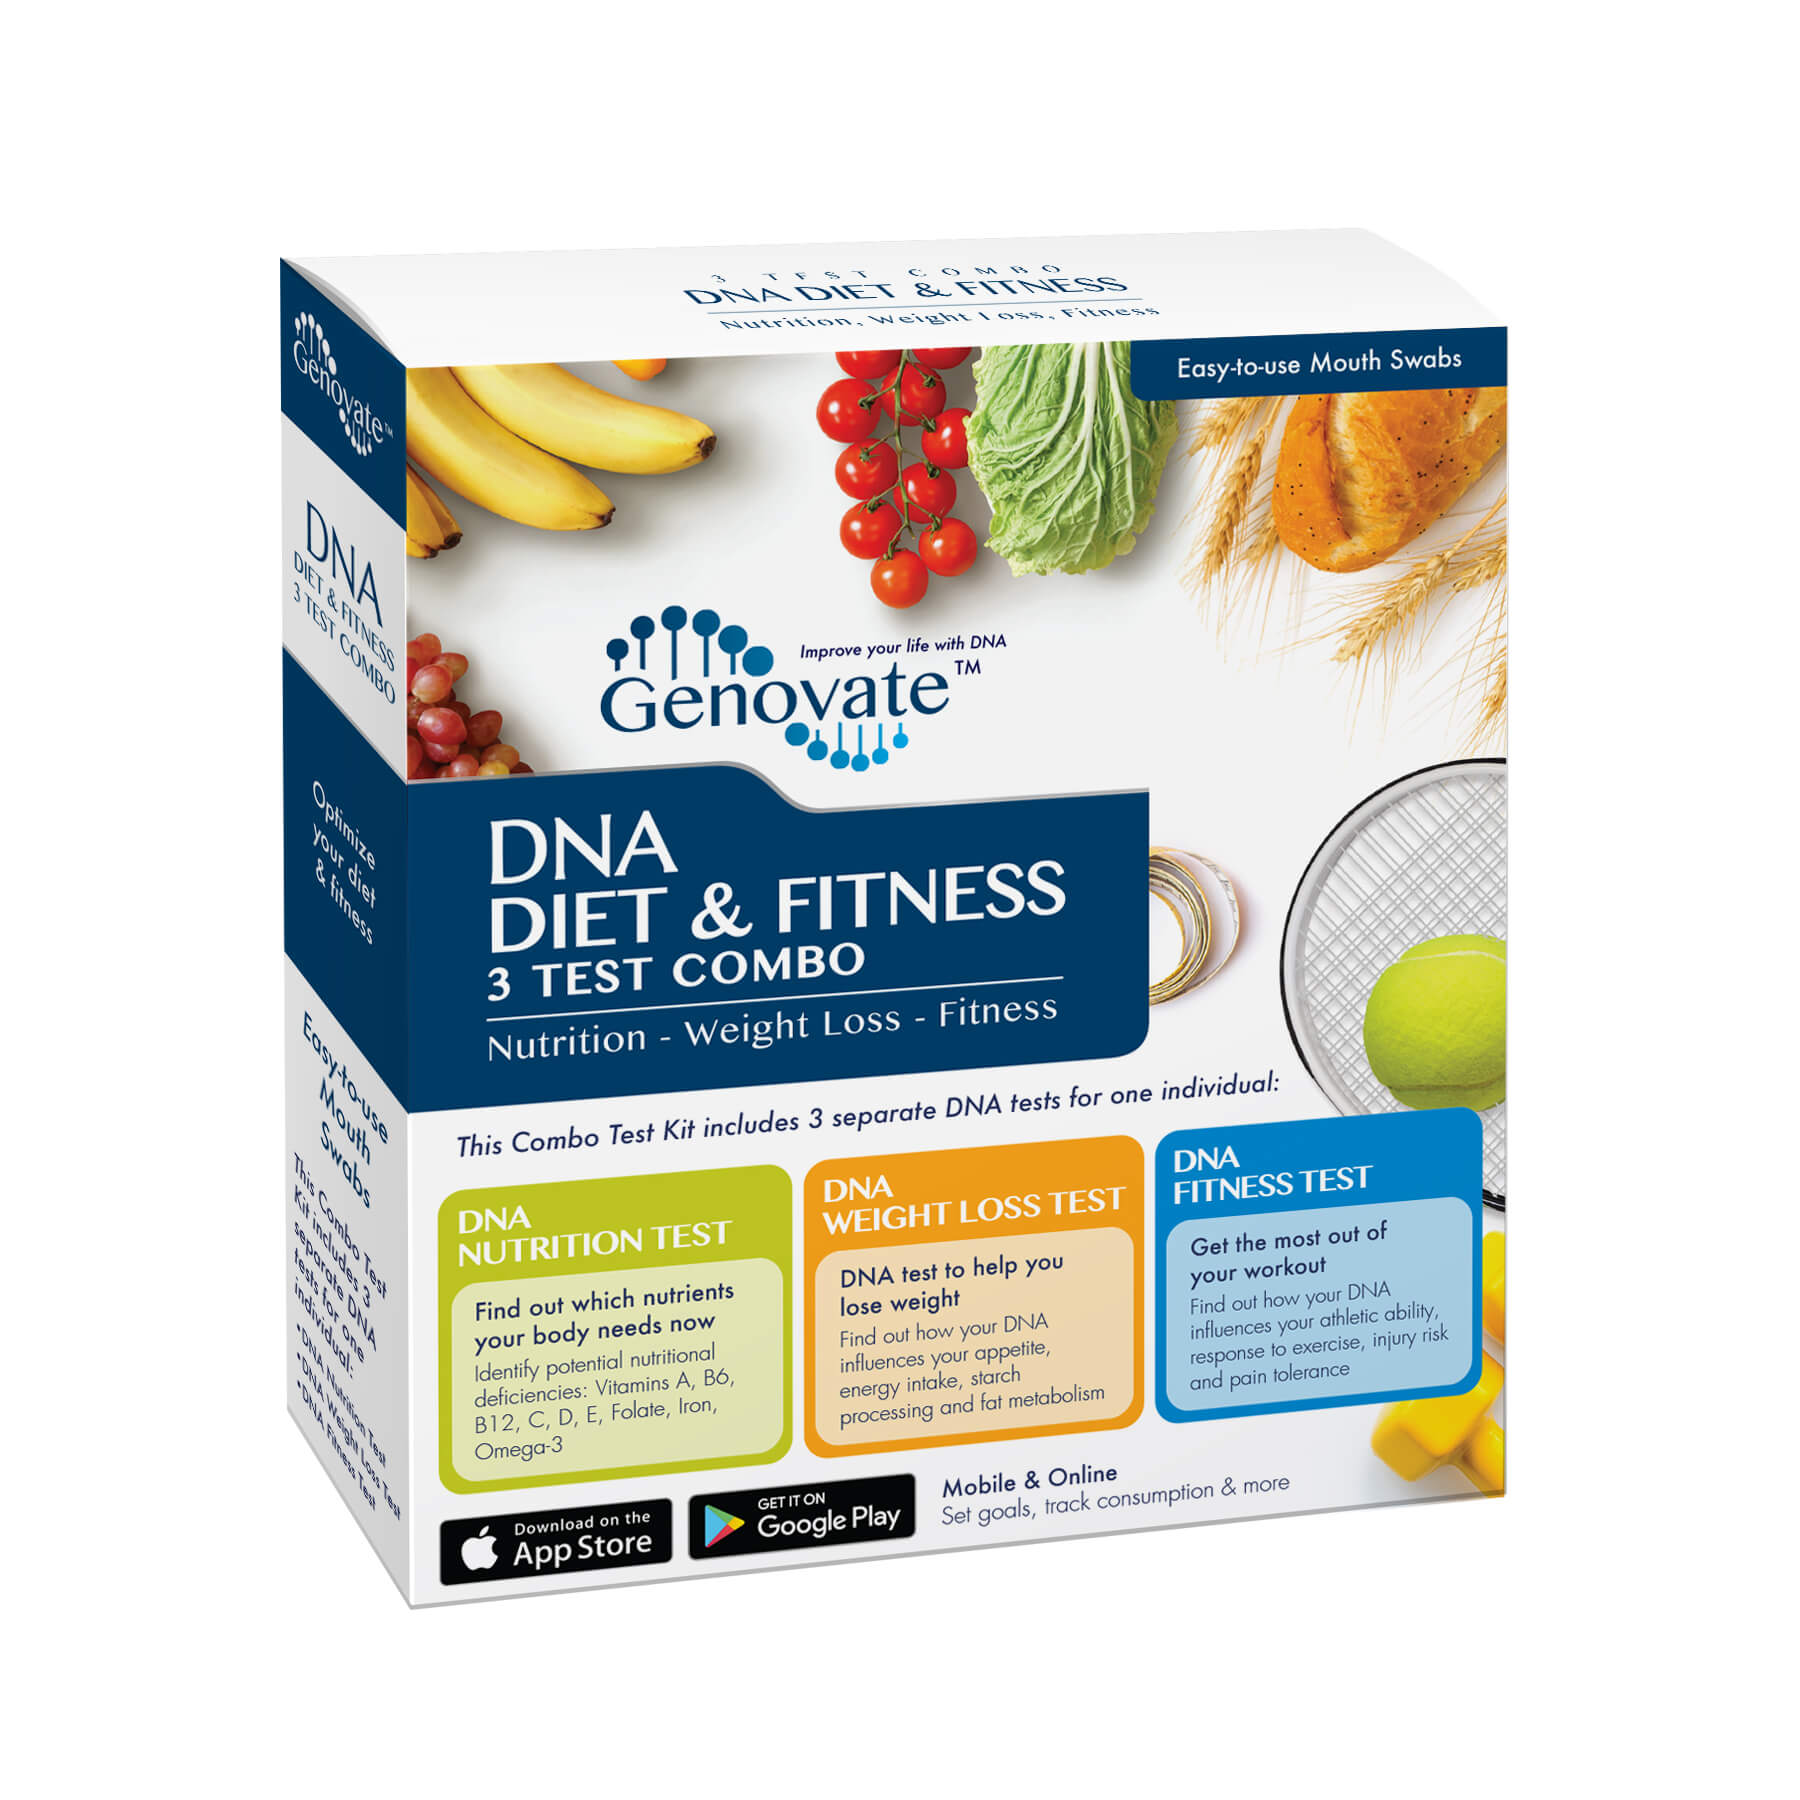 dna testing for weight loss reviews